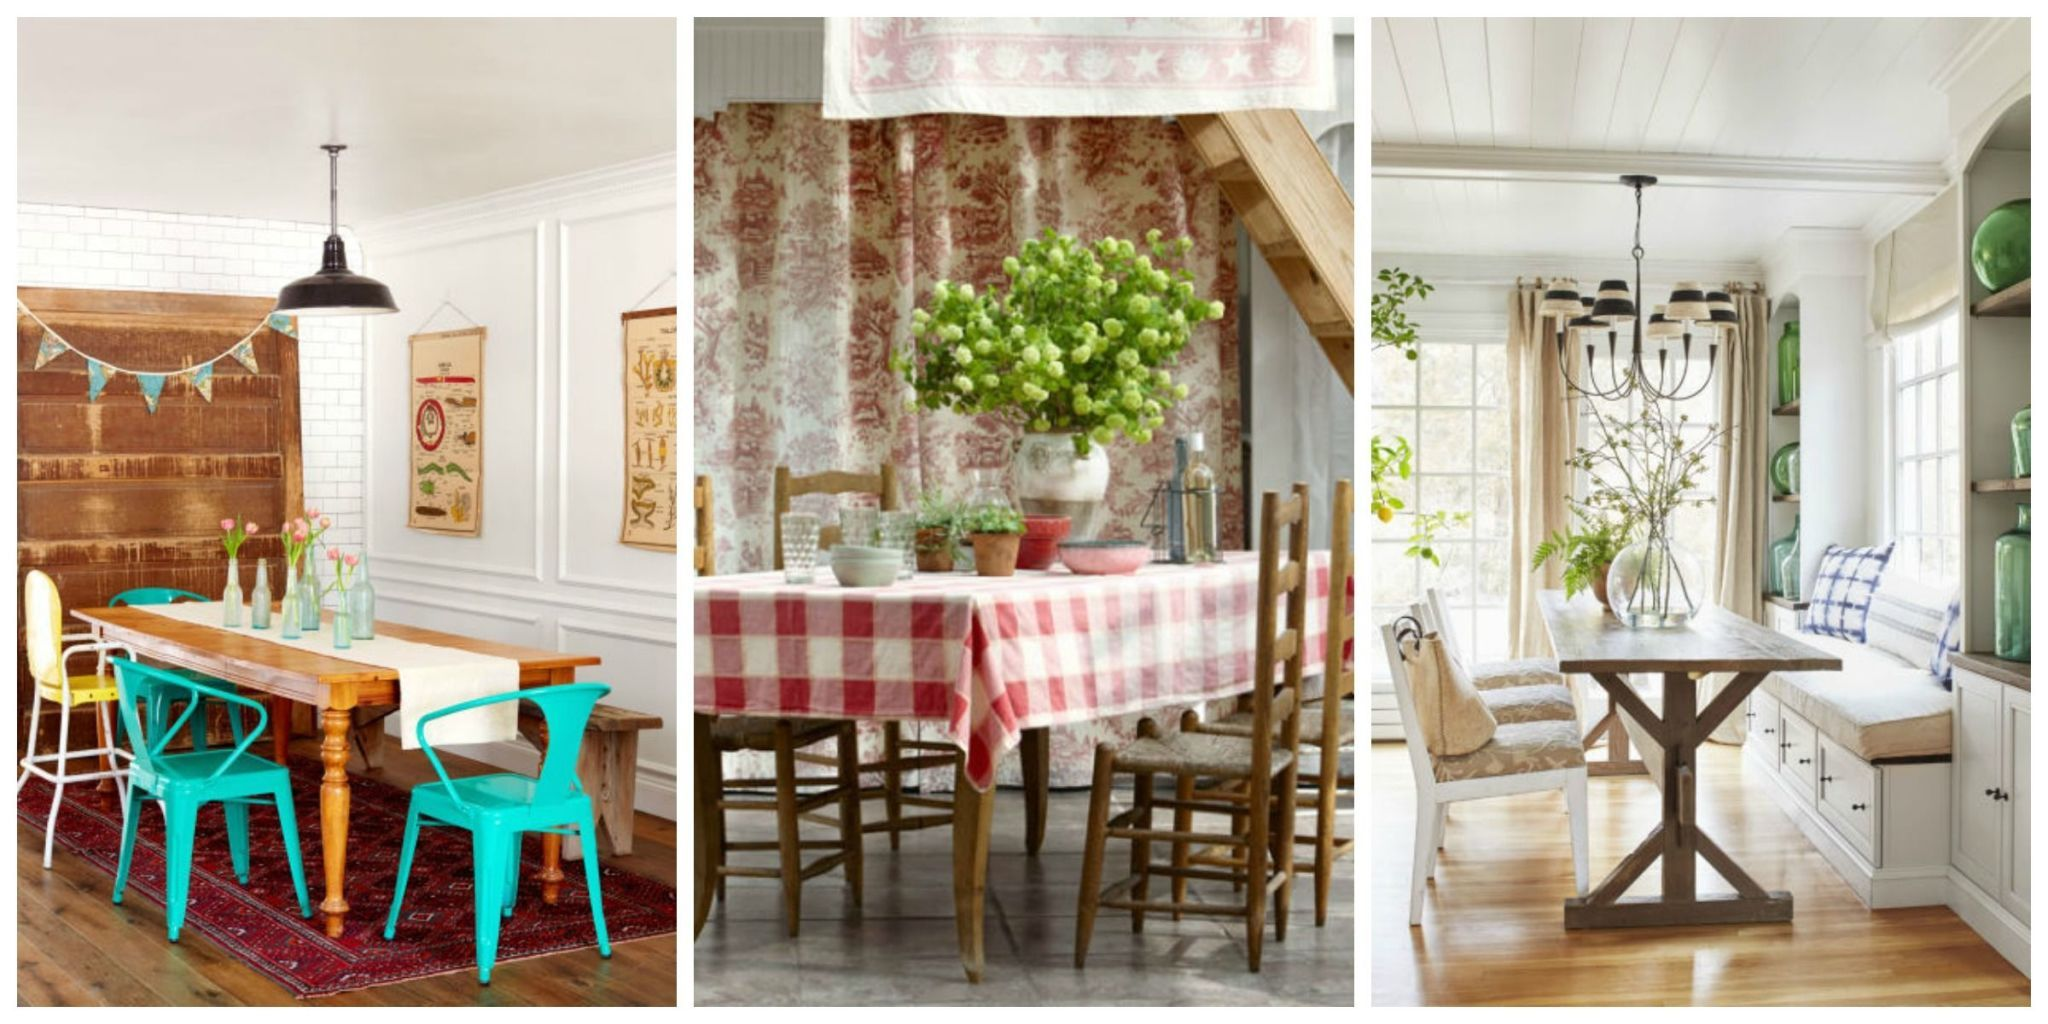 Superbe From Floral Themes To Vintage Furniture, Our Dining Room Design Guide Will  Help You Transform Your Dining Space In No Time. Plus, Makeover Your  Kitchen, ...